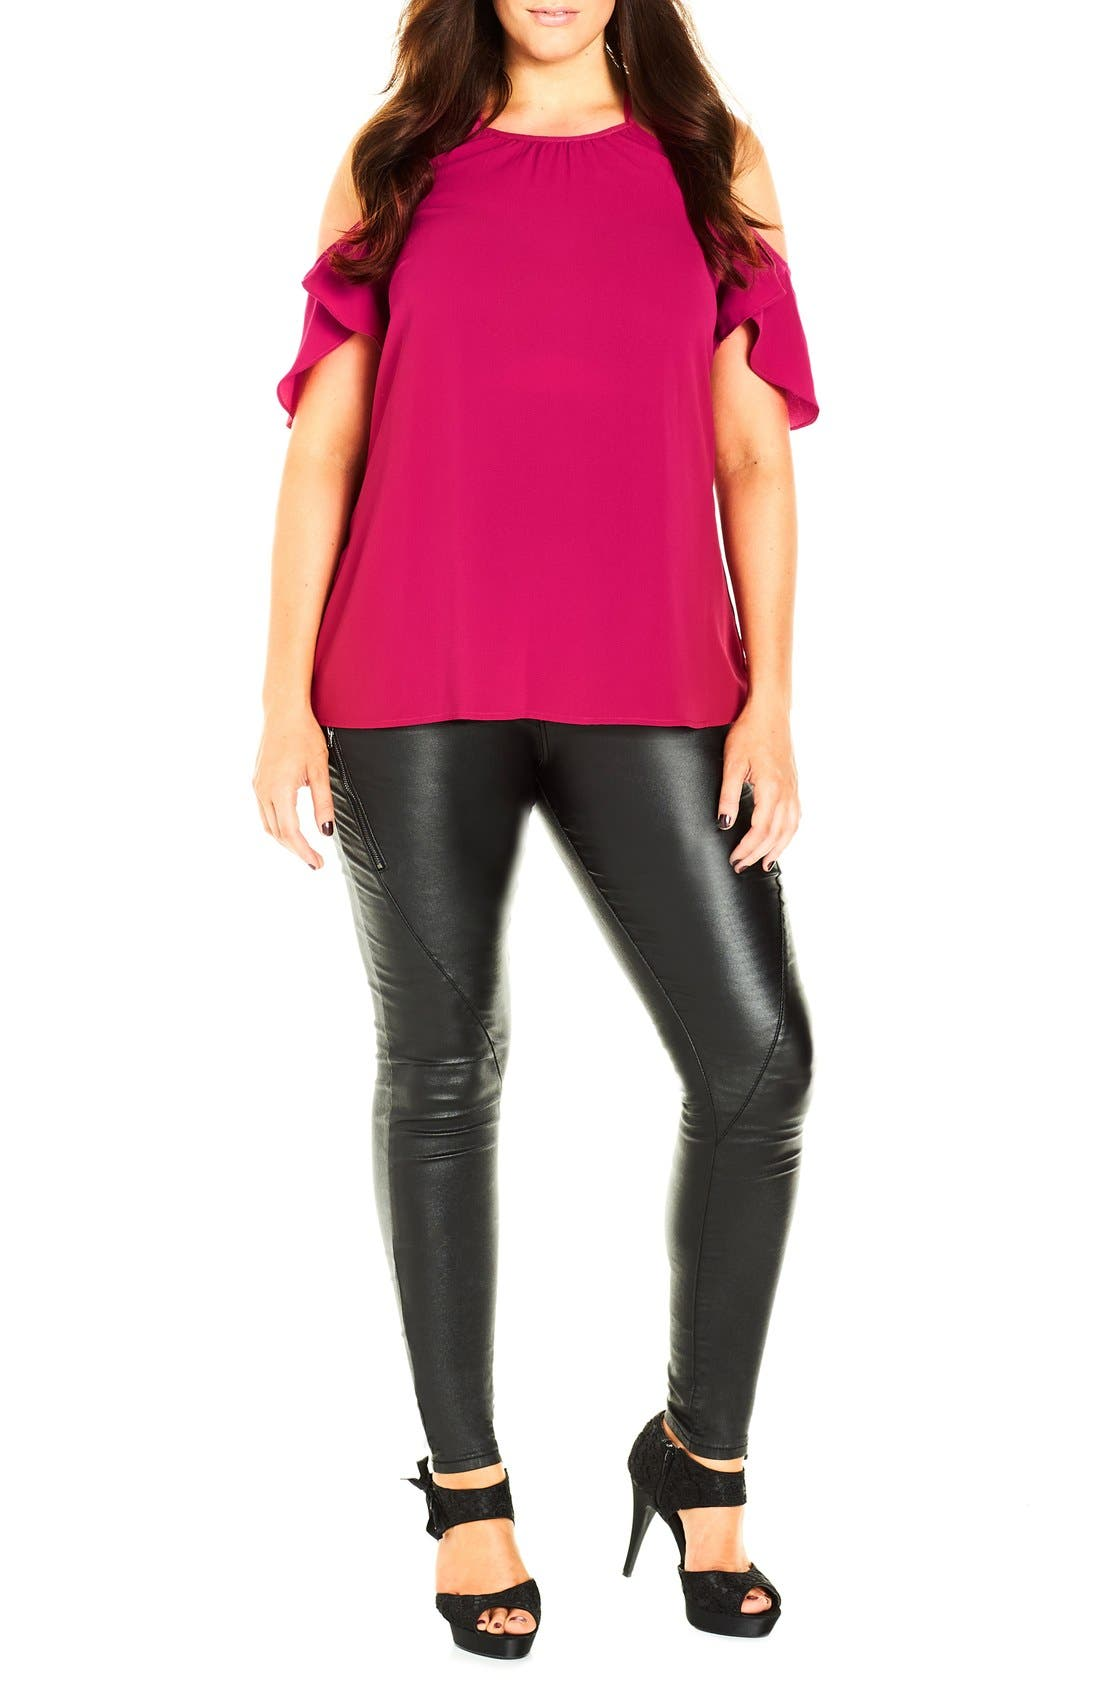 Alternate Image 1 Selected - City Chic 'Flirty Sleeve' Crepe Cold Shoulder Top (Plus Size)